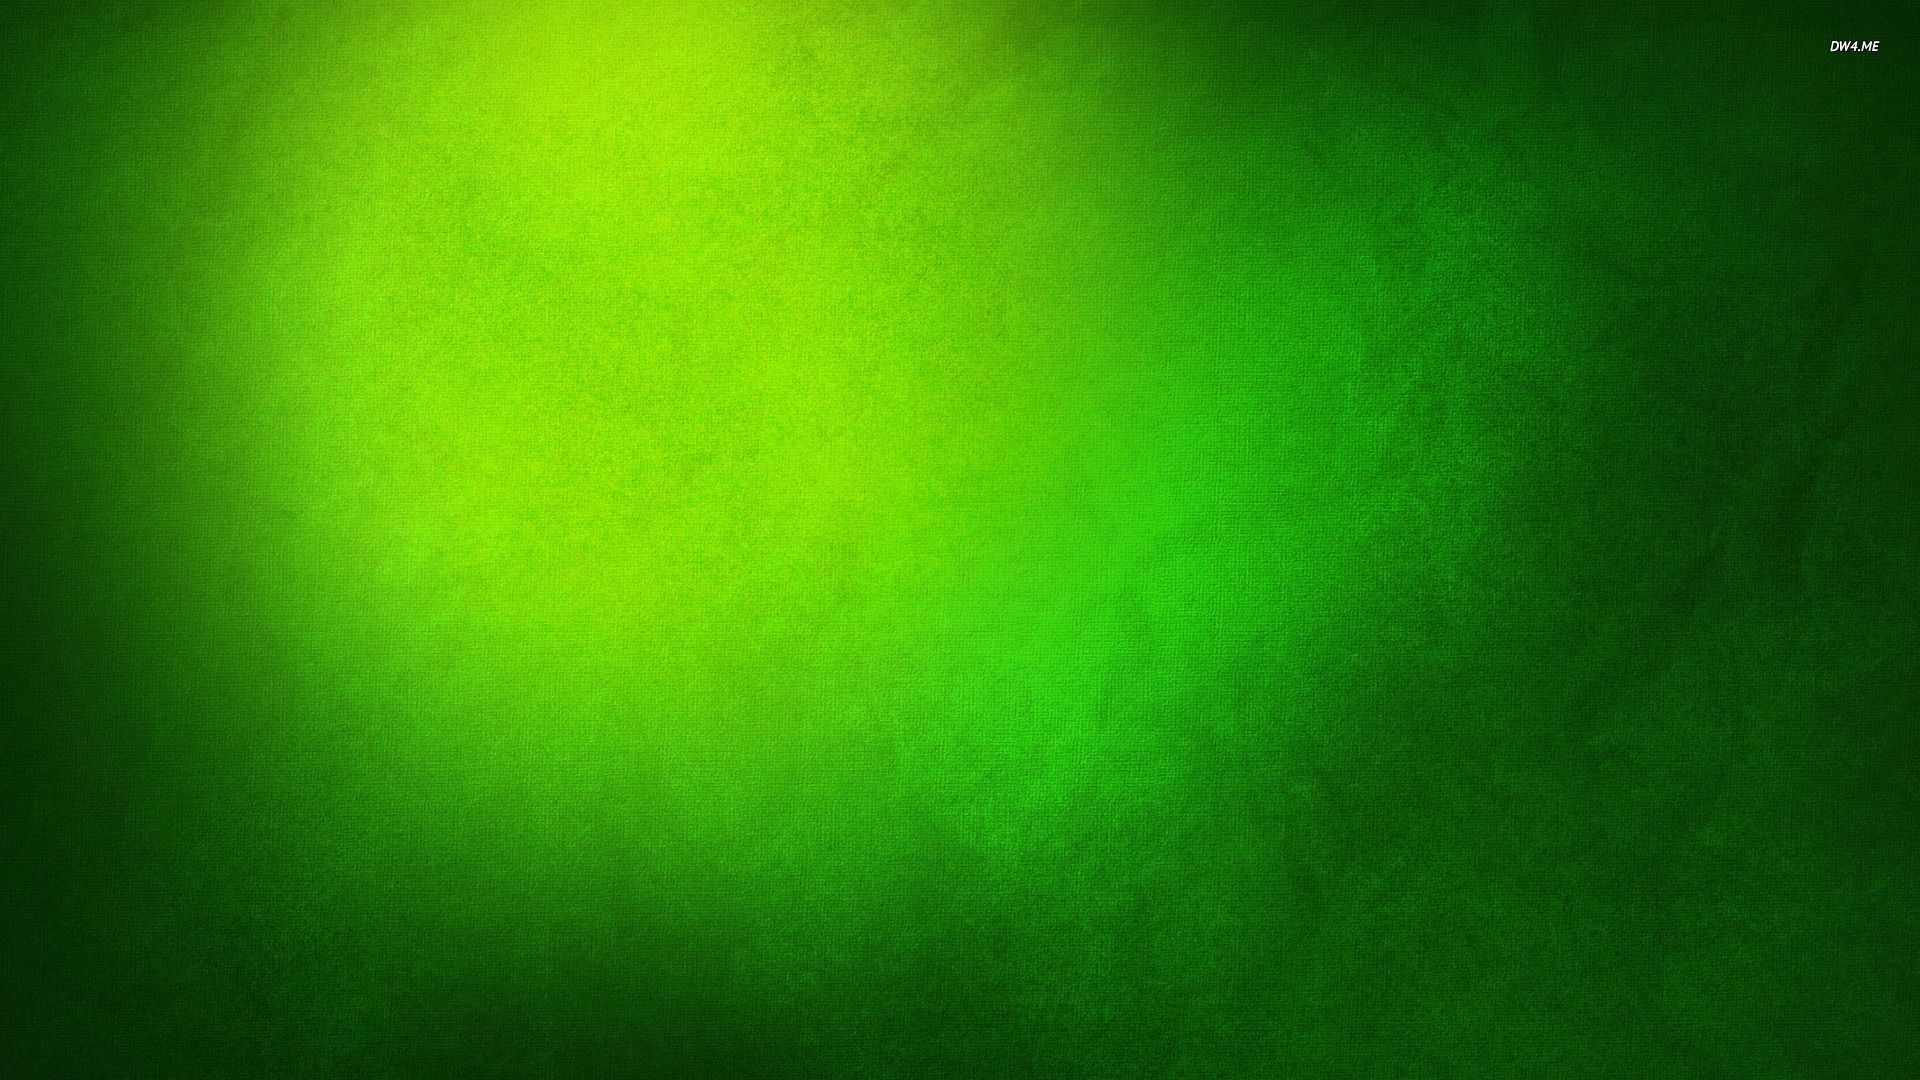 1920x1080 Fondos de pantalla verde Full HD # 3NBU83P | WallpapersExpert.com